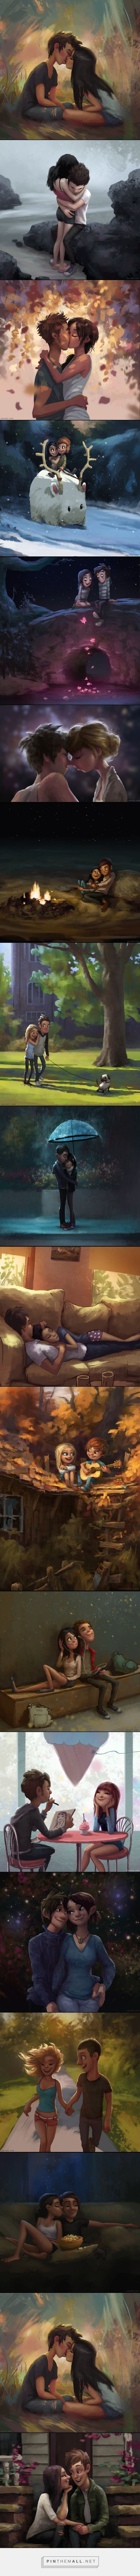 Romantic Illustrations by Zac Retz | Abduzeedo Design Inspiration - created via http://pinthemall.net